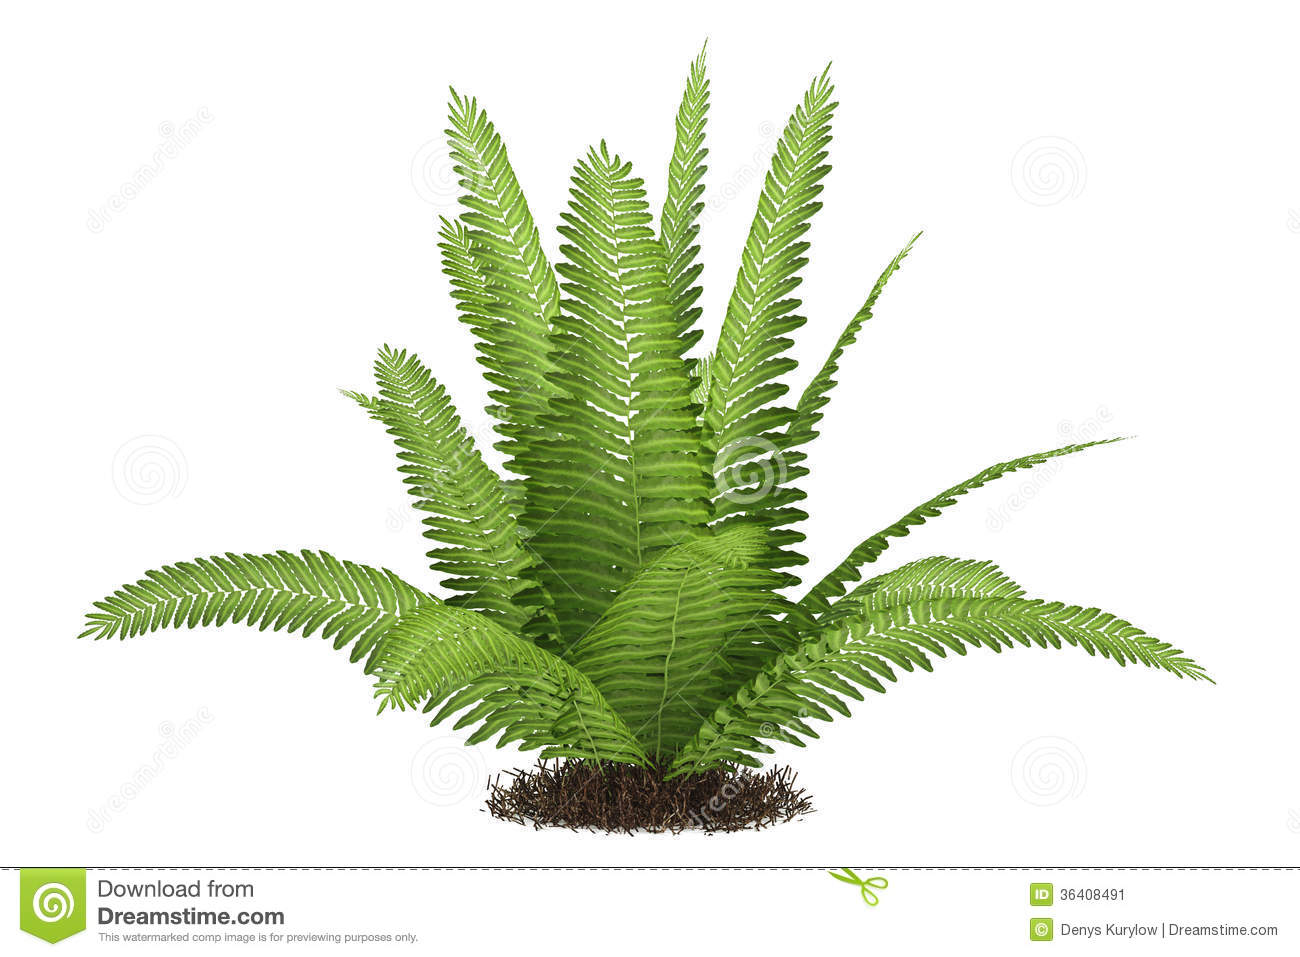 Ferns clipart with transparent background free.